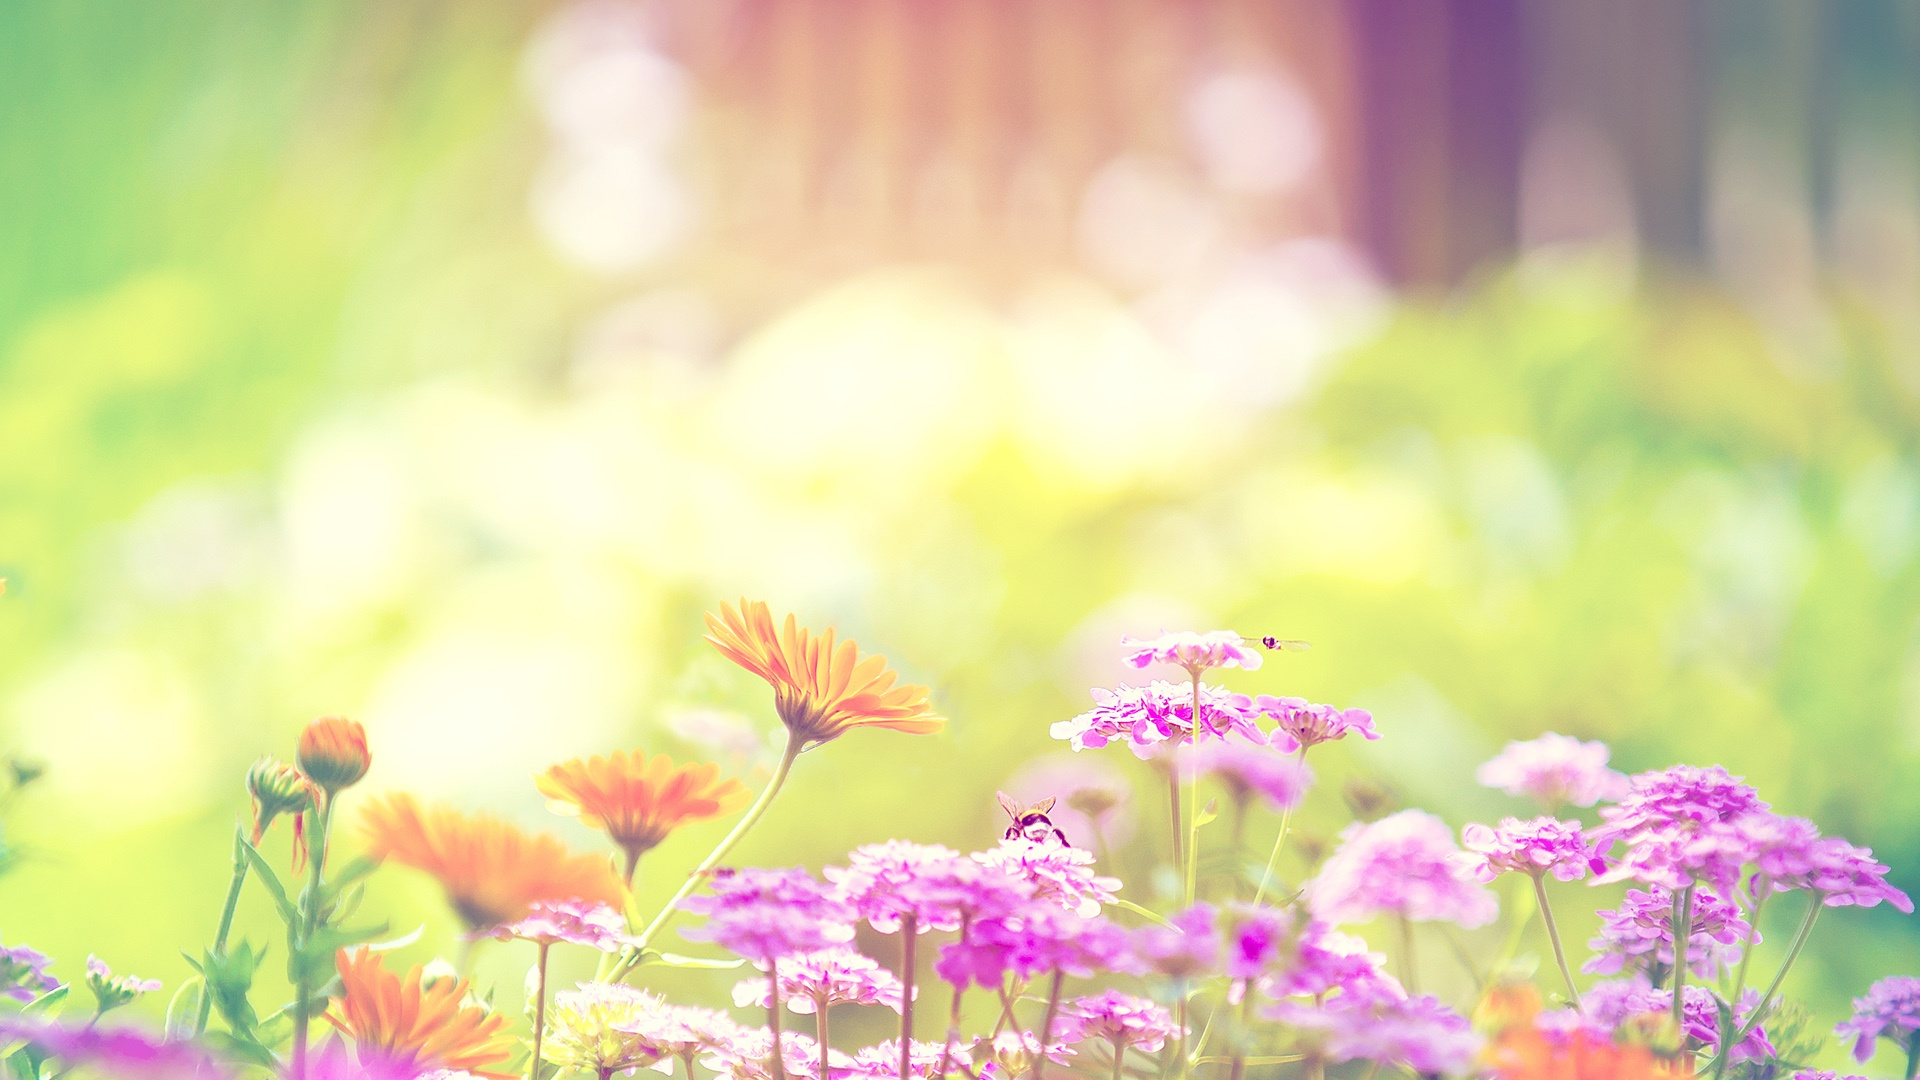 Spring Backgrounds Tumblr 1920x1080